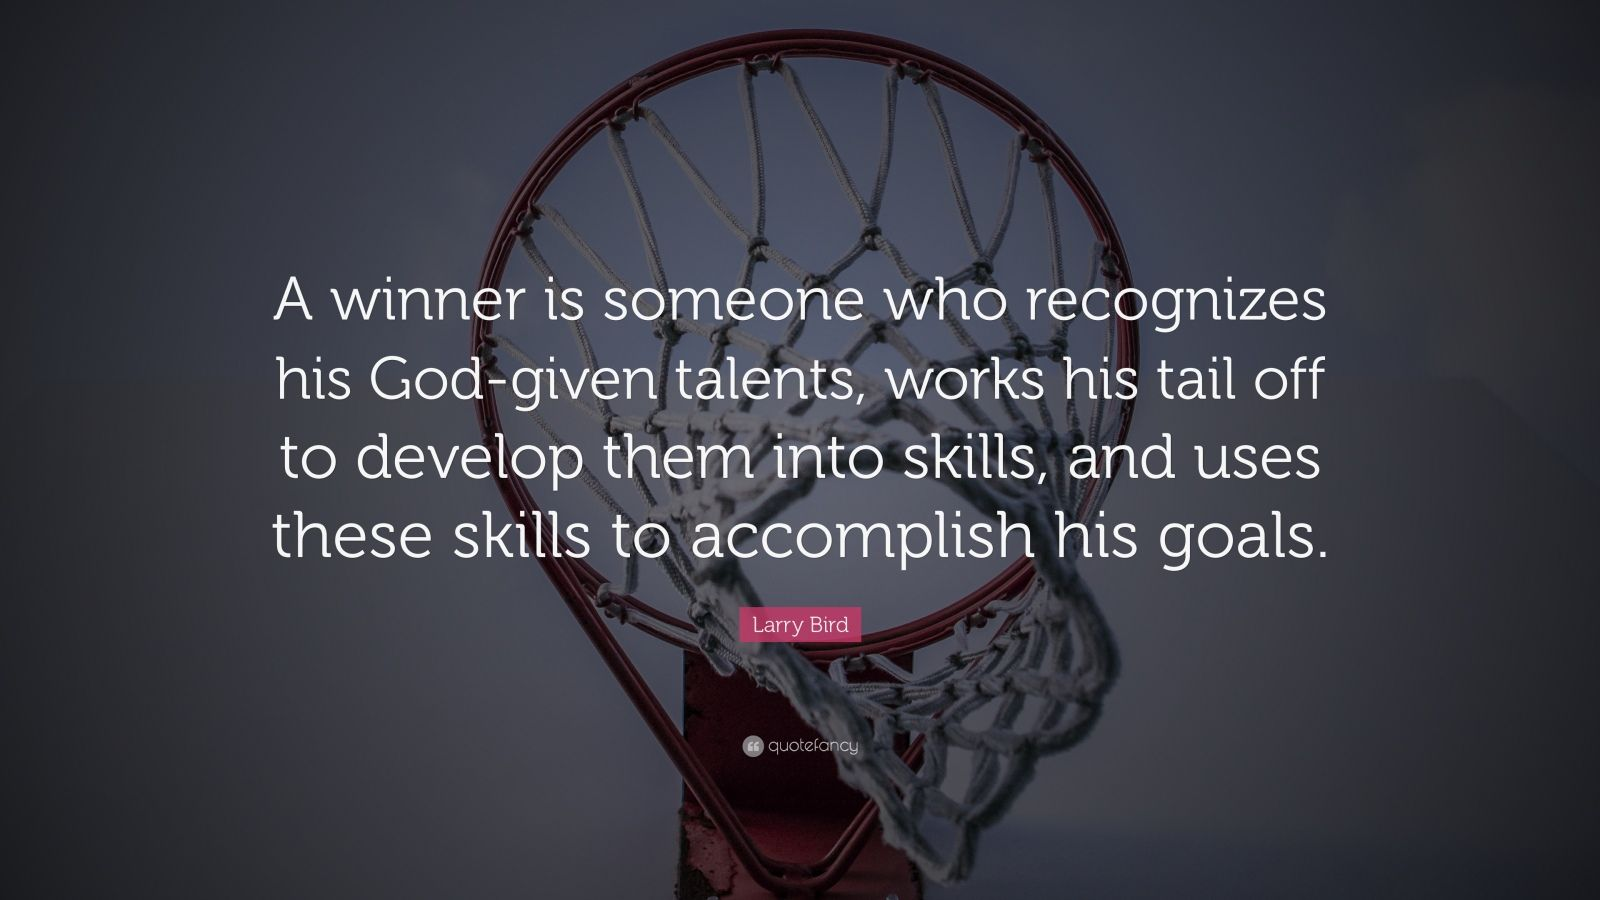 """Larry Bird Quote: """"A winner is someone who recognizes his God-given talents, works his tail off to develop them into skills, and uses these skills to accomplish his goals."""""""